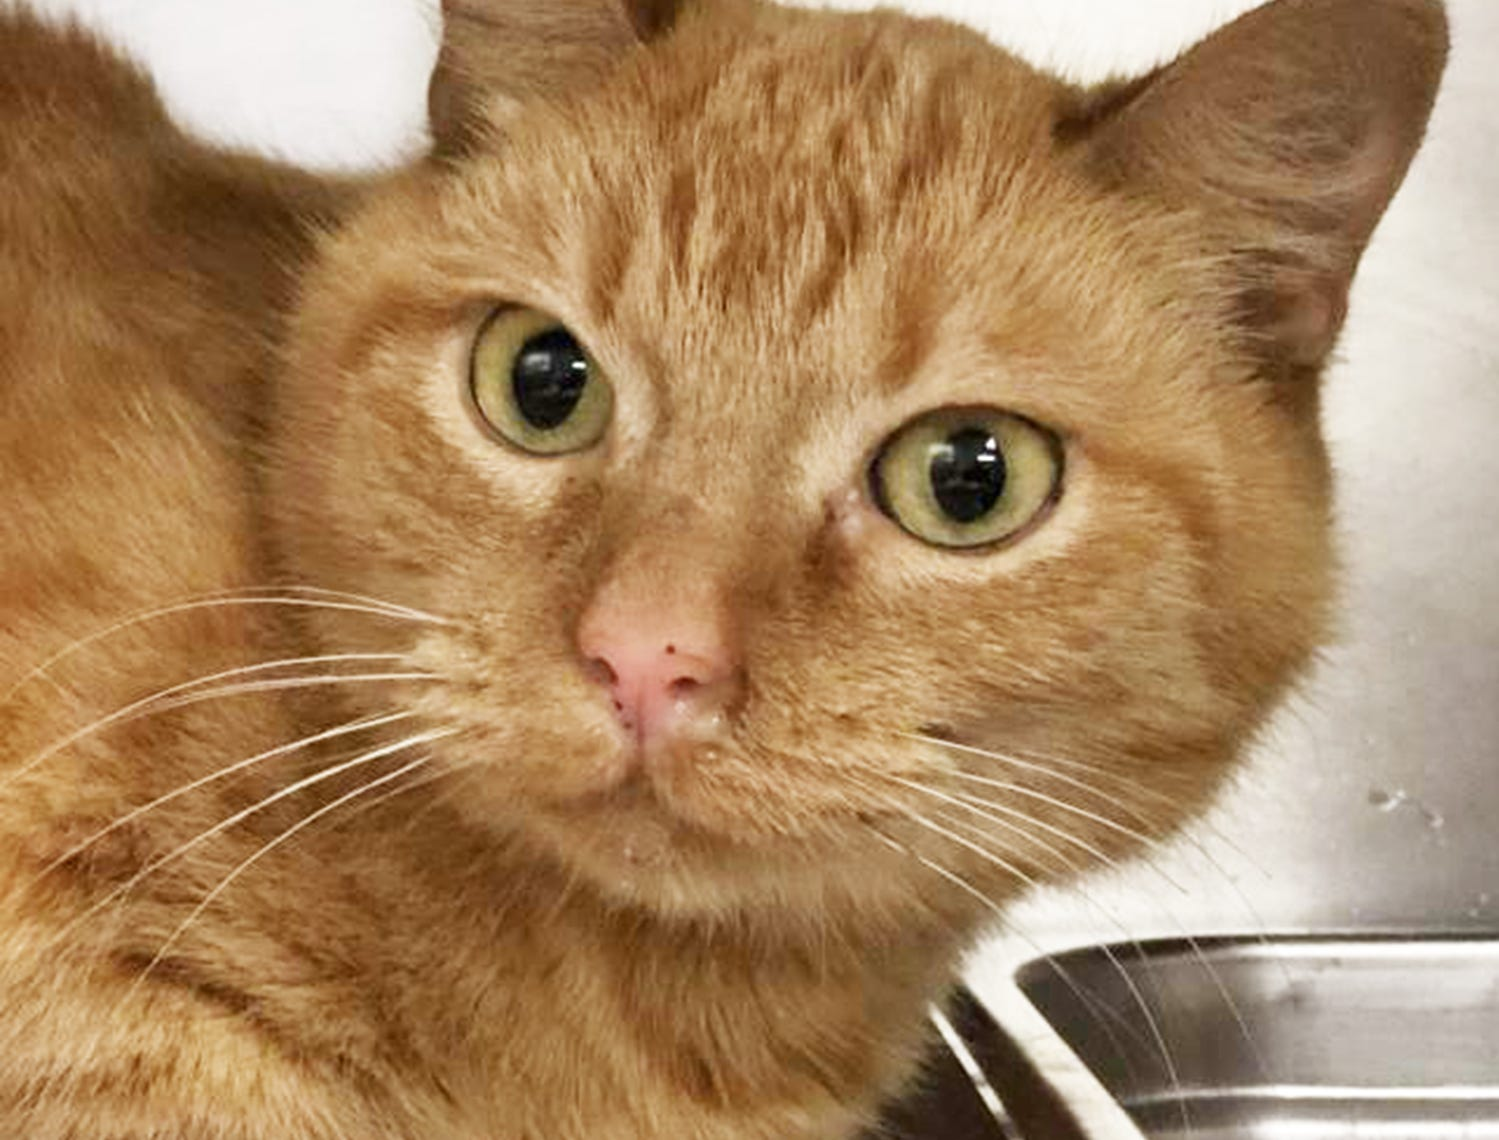 Are you looking for a lap kitty? Ginger is a sweet, mellow and affectionate orange tabby. She is only 11 months old and is ready for a lifetime of love. You can meet Ginger at the Camarillo location of Ventura County Animal Services, 600 Aviation Drive, Camarillo. Ginger's ID number is A700596. For more information on VCAS, or to see other available animals, go to www.vcas.us.